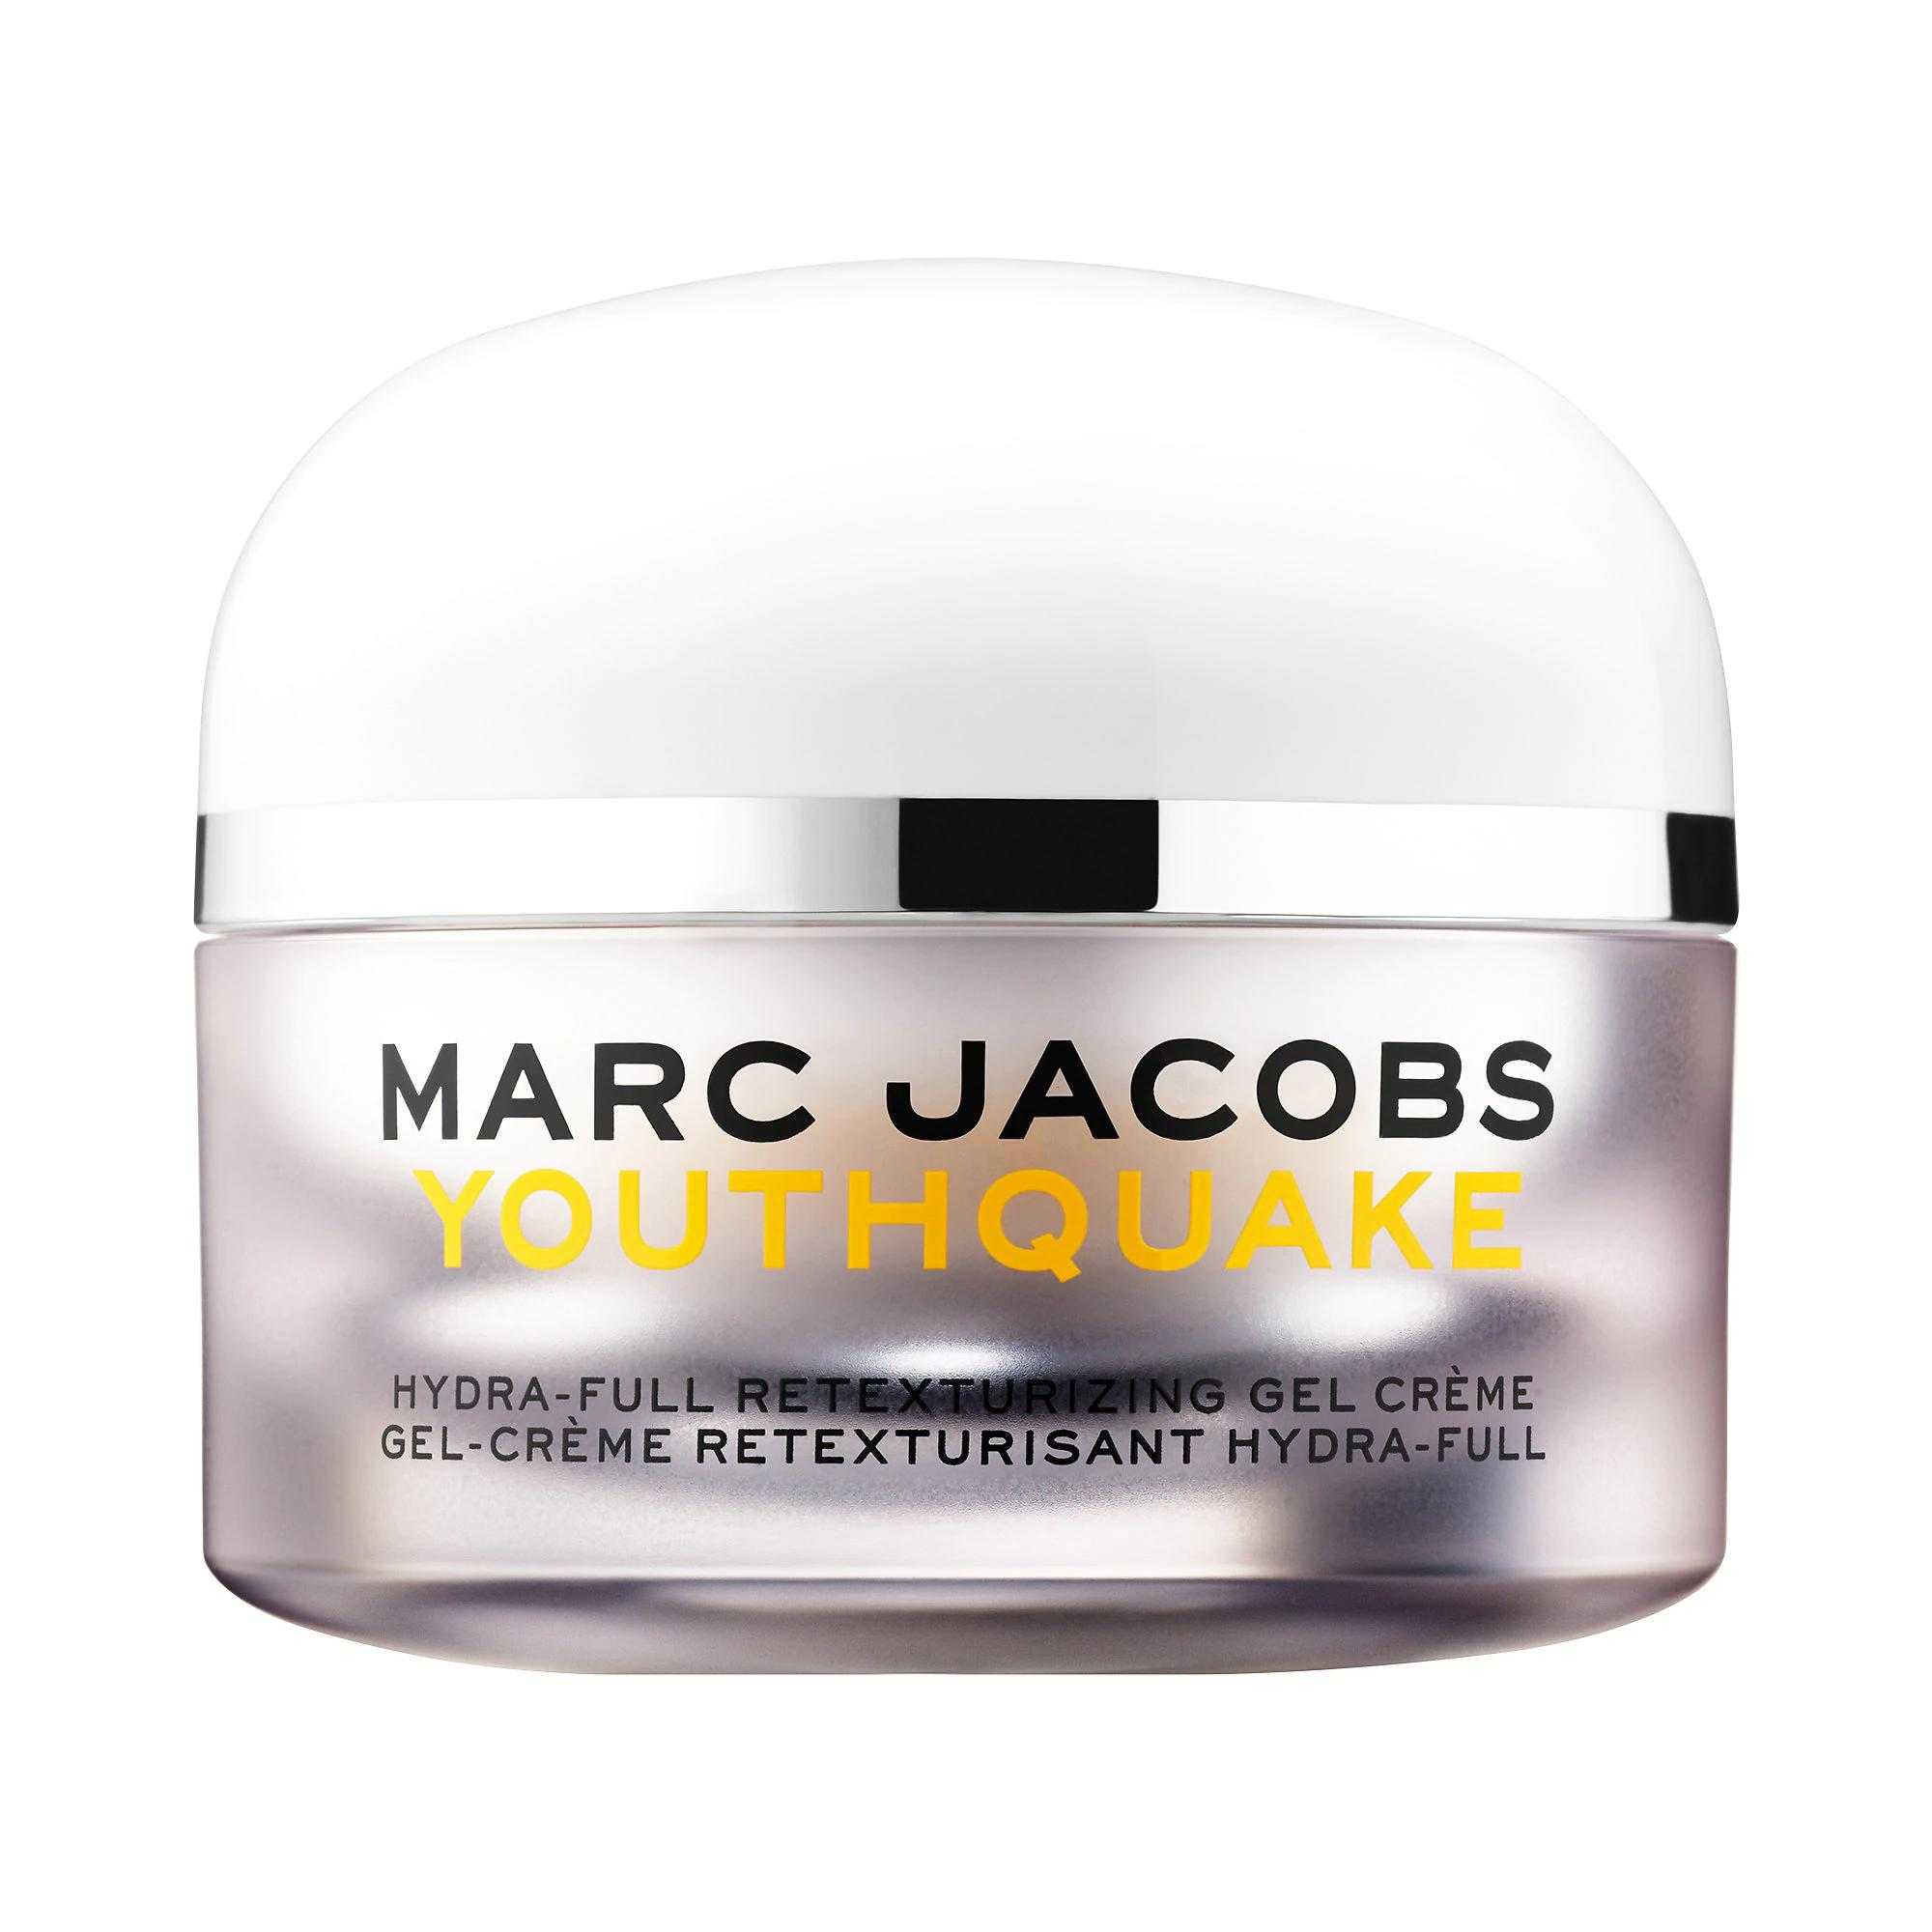 Marc Jacobs Youthquake Hydra-full Retexturizing Gel Creme Moisturizer